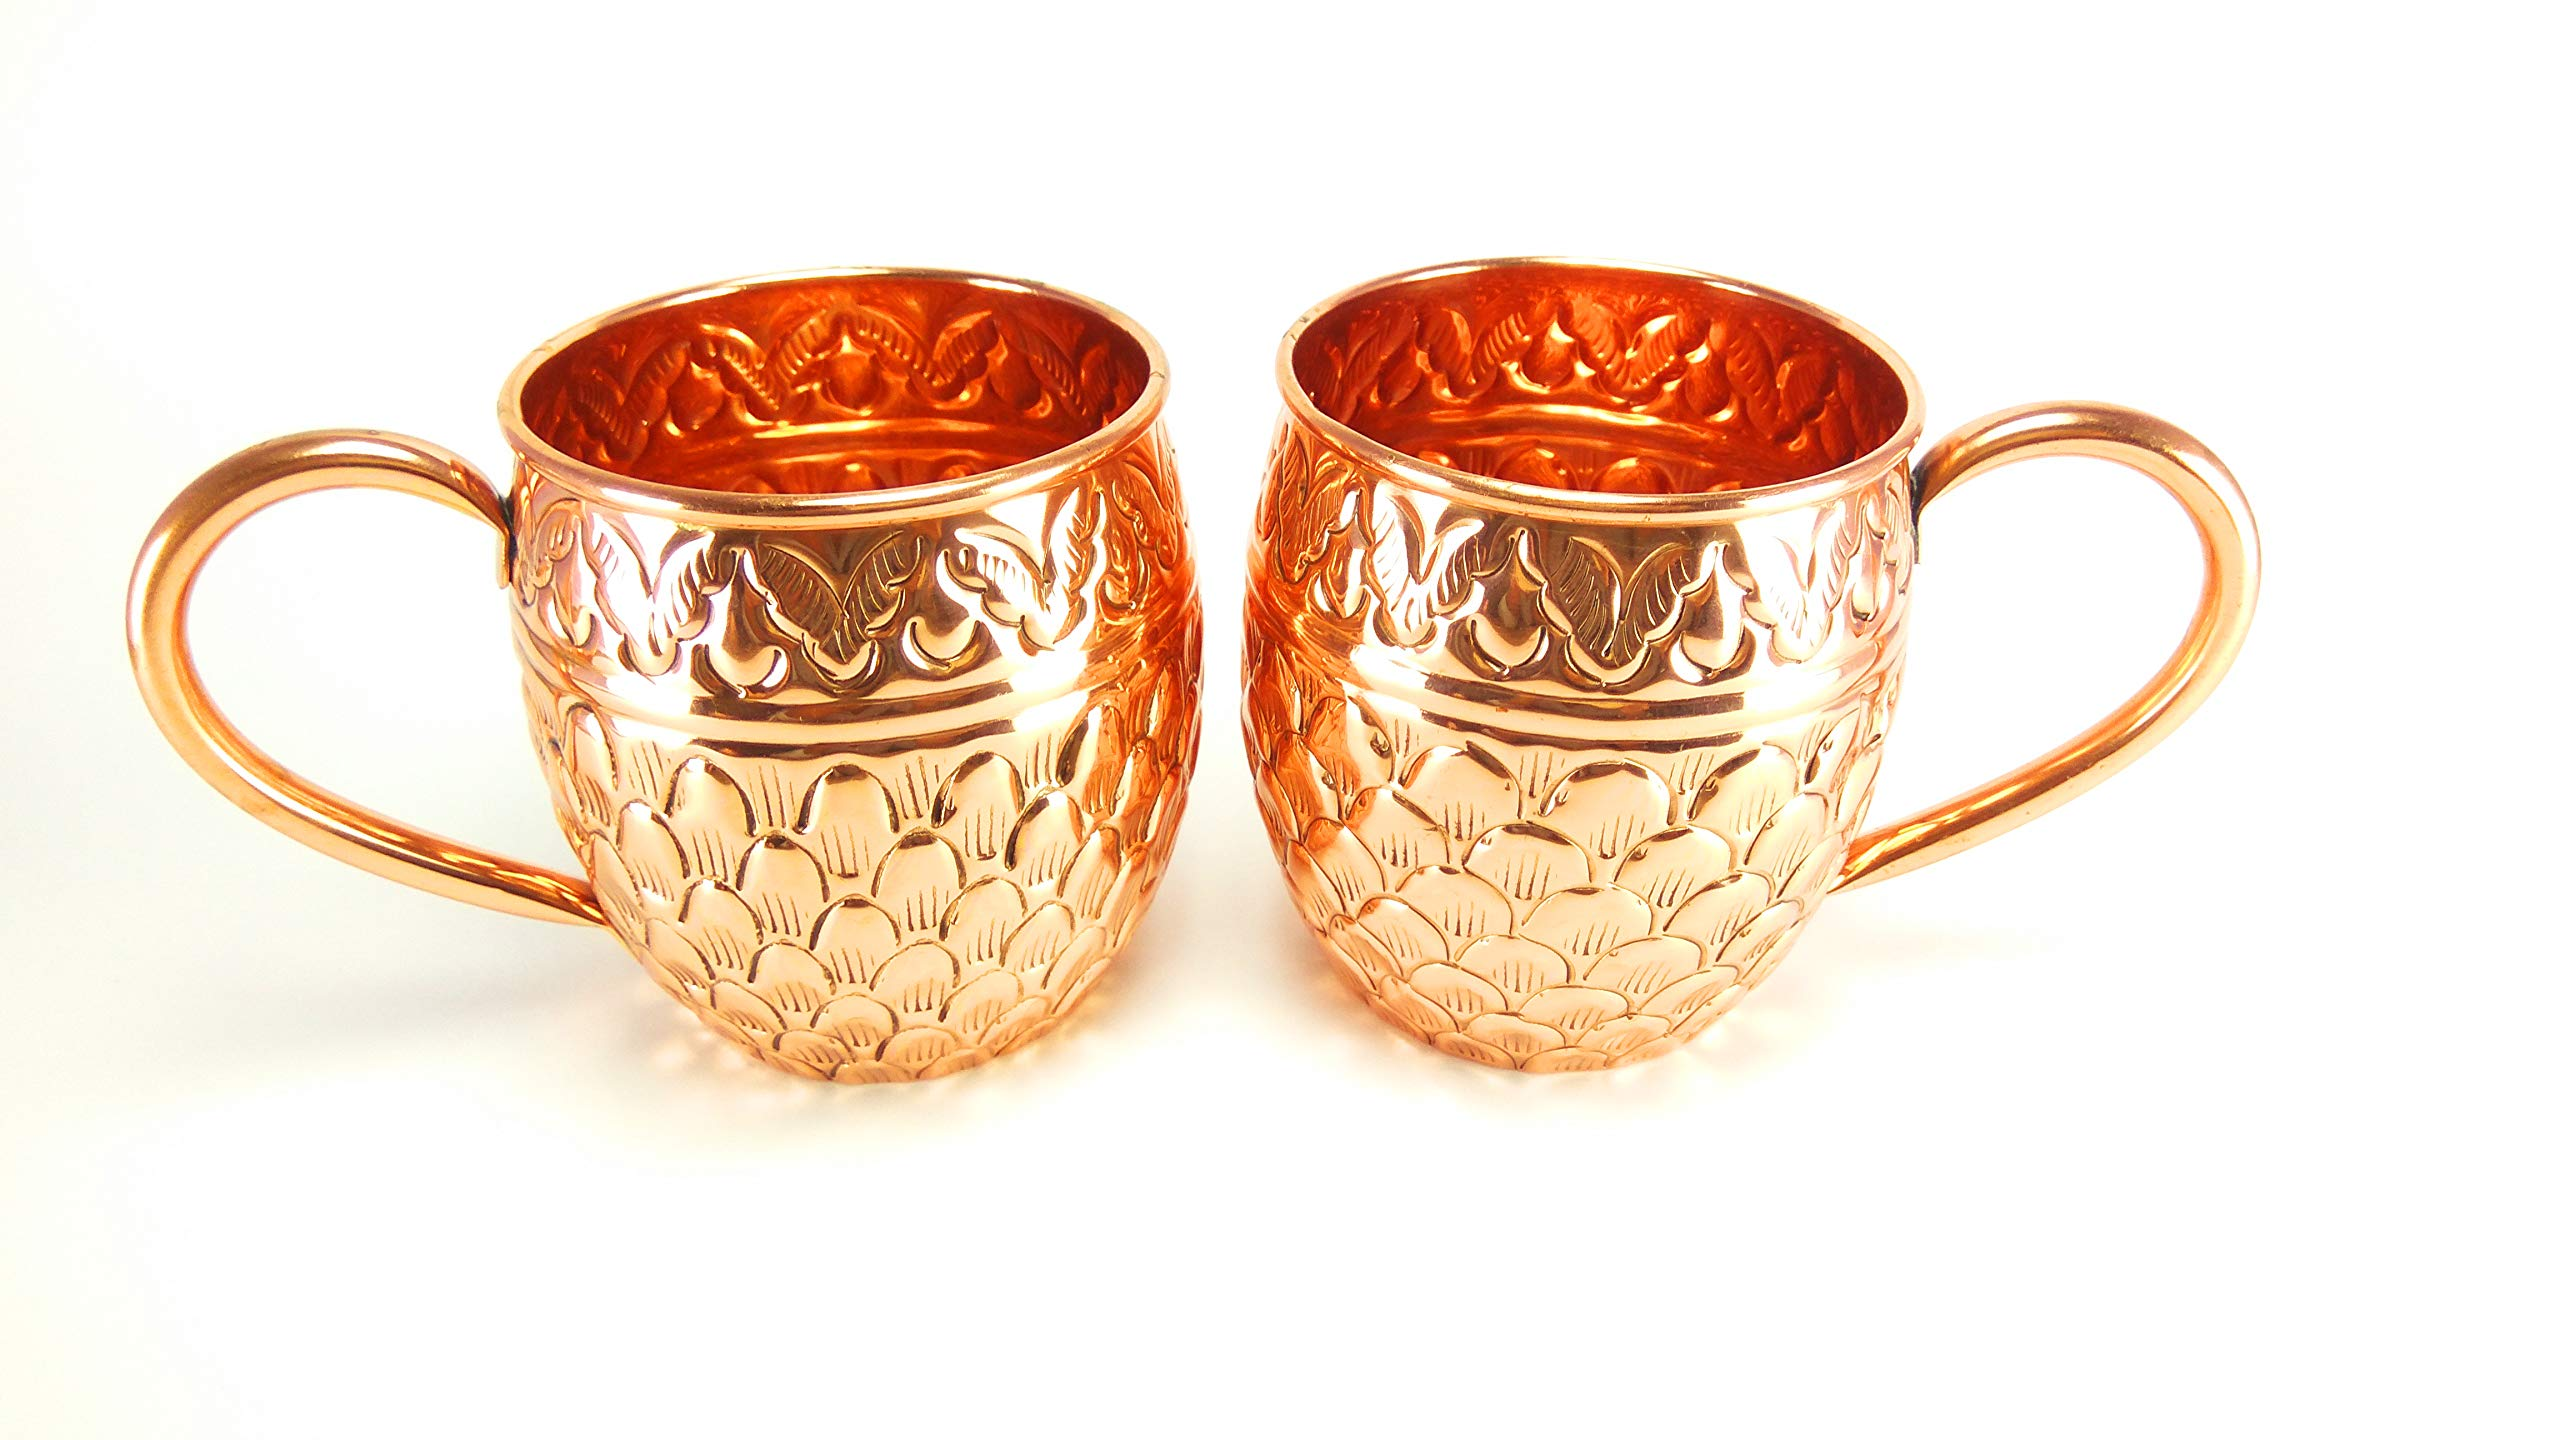 Moscow Mule Copper Mugs - Set of 4-100% PURE COPPER HANDCRAFTED - Food Safe Pure Solid Copper Mugs - 16 oz Gift Set with BONUS: Highest Quality Cocktail Copper Straws